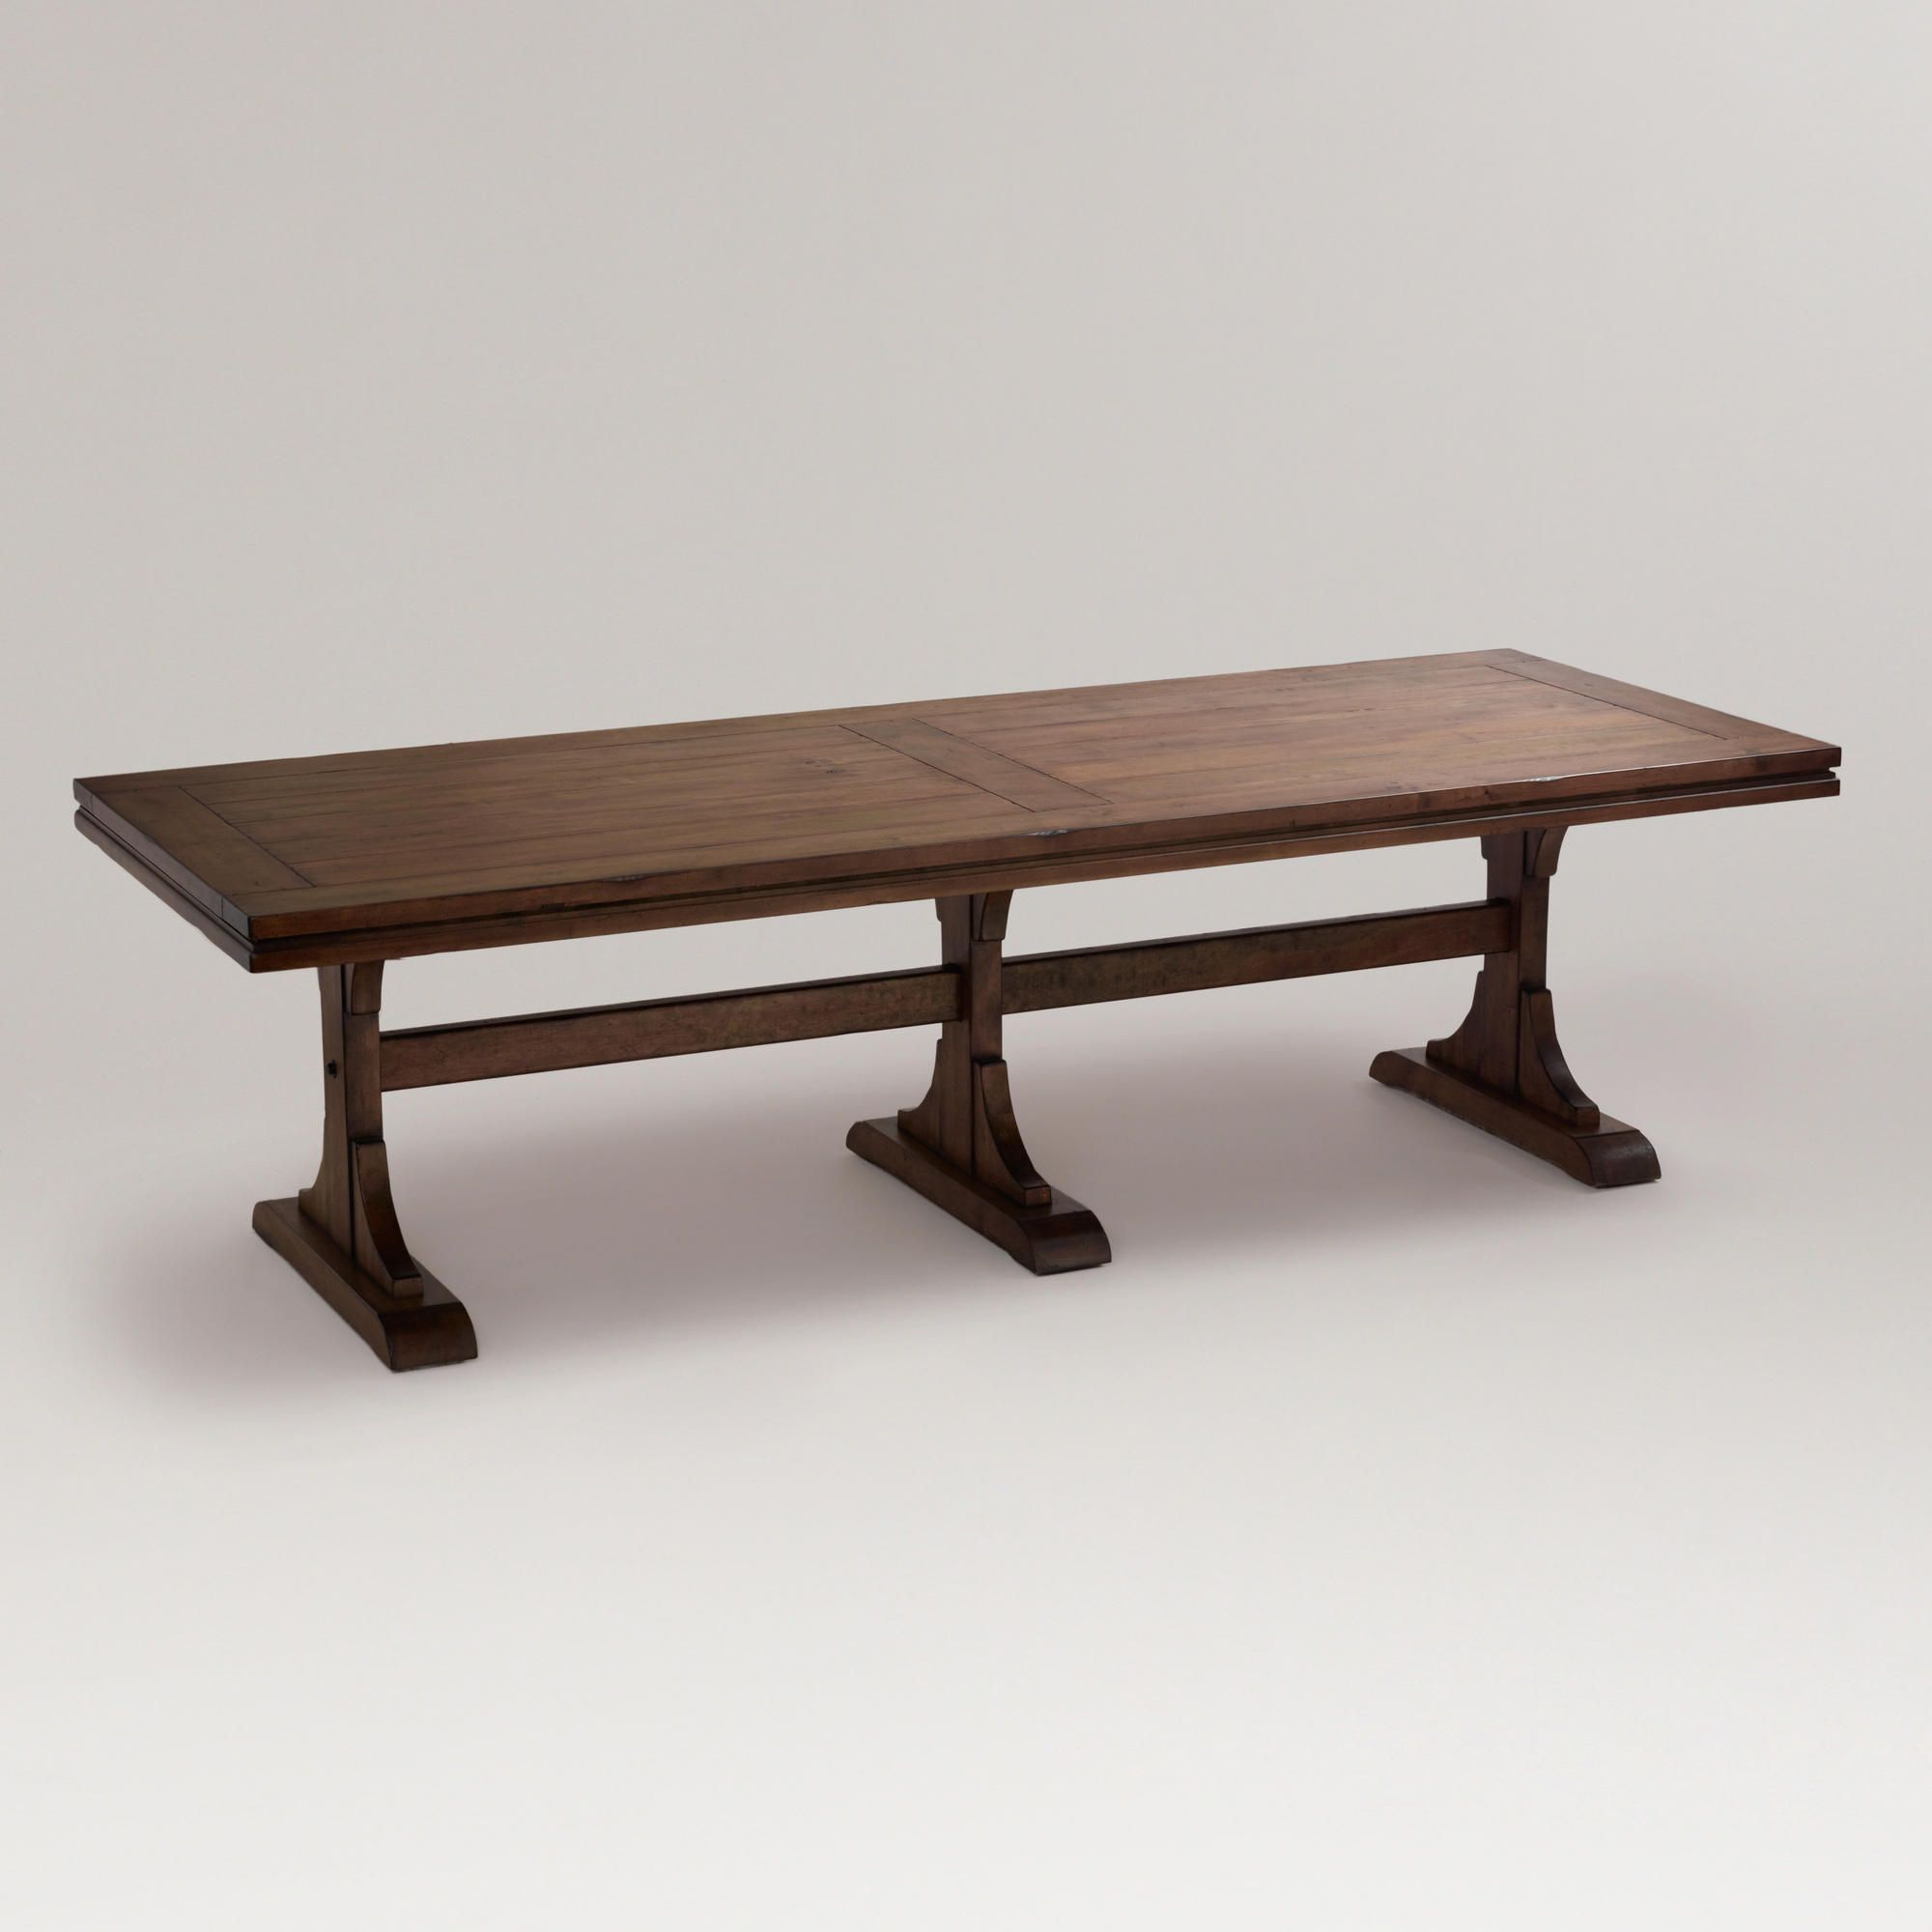 Monroe dining table world market this would be great for holiday dinners